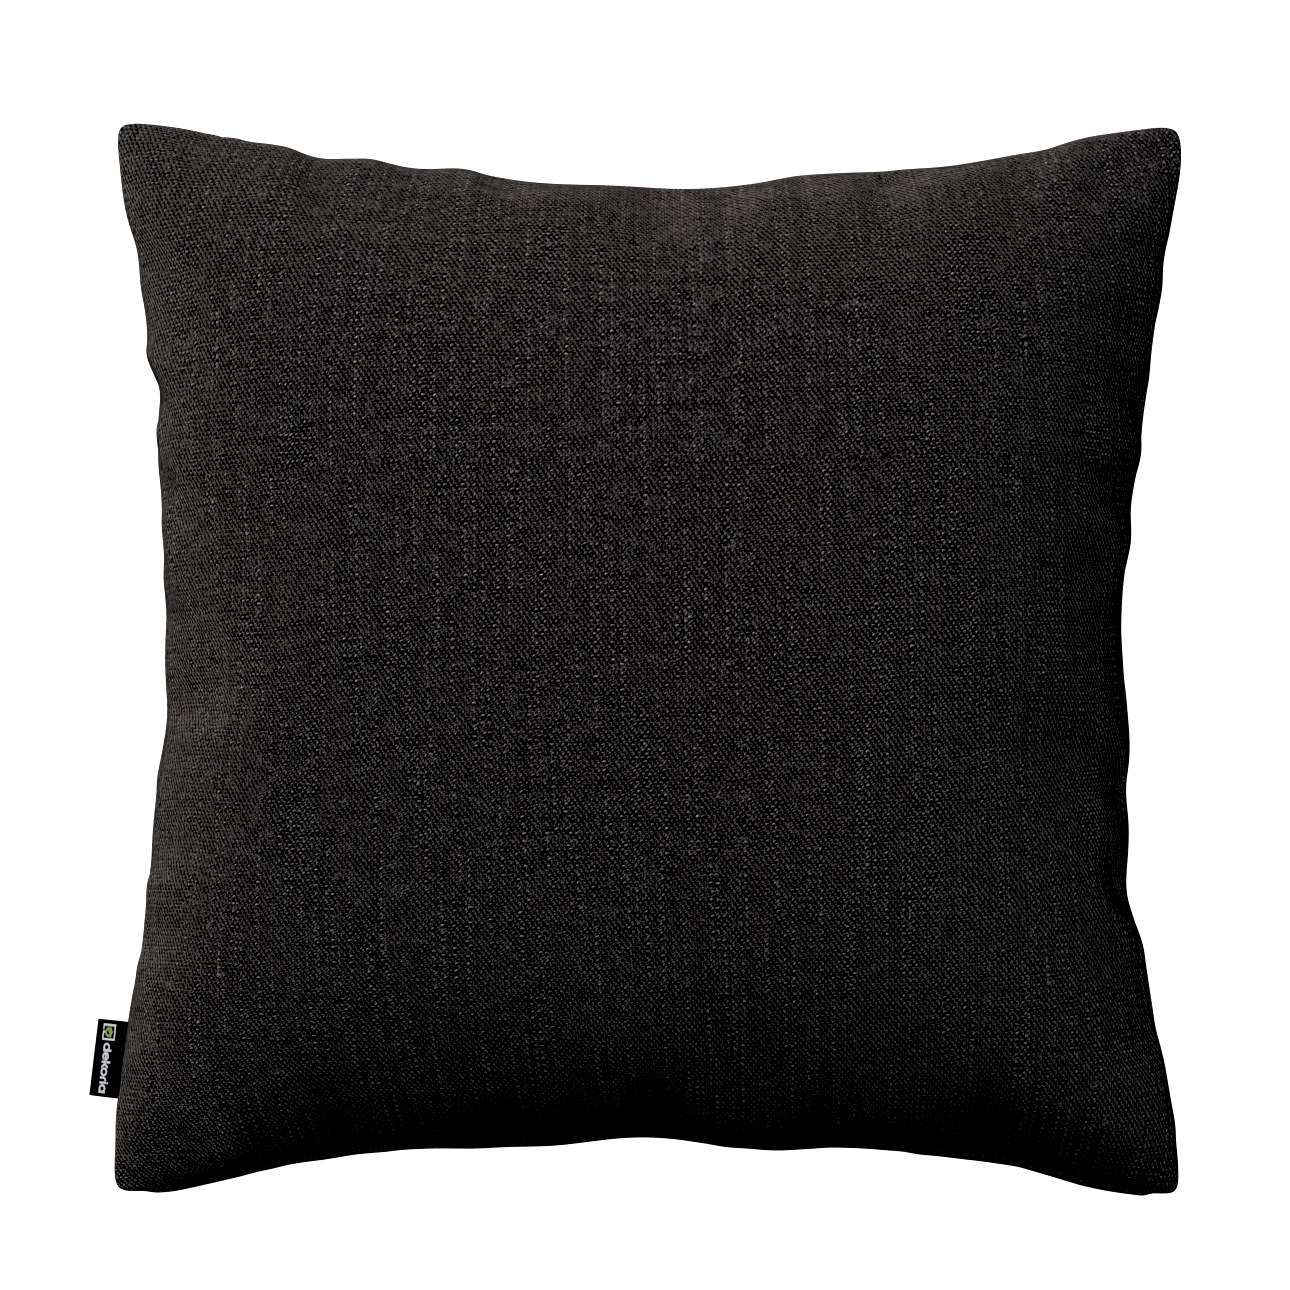 Kinga cushion cover in collection Vintage, fabric: 702-36